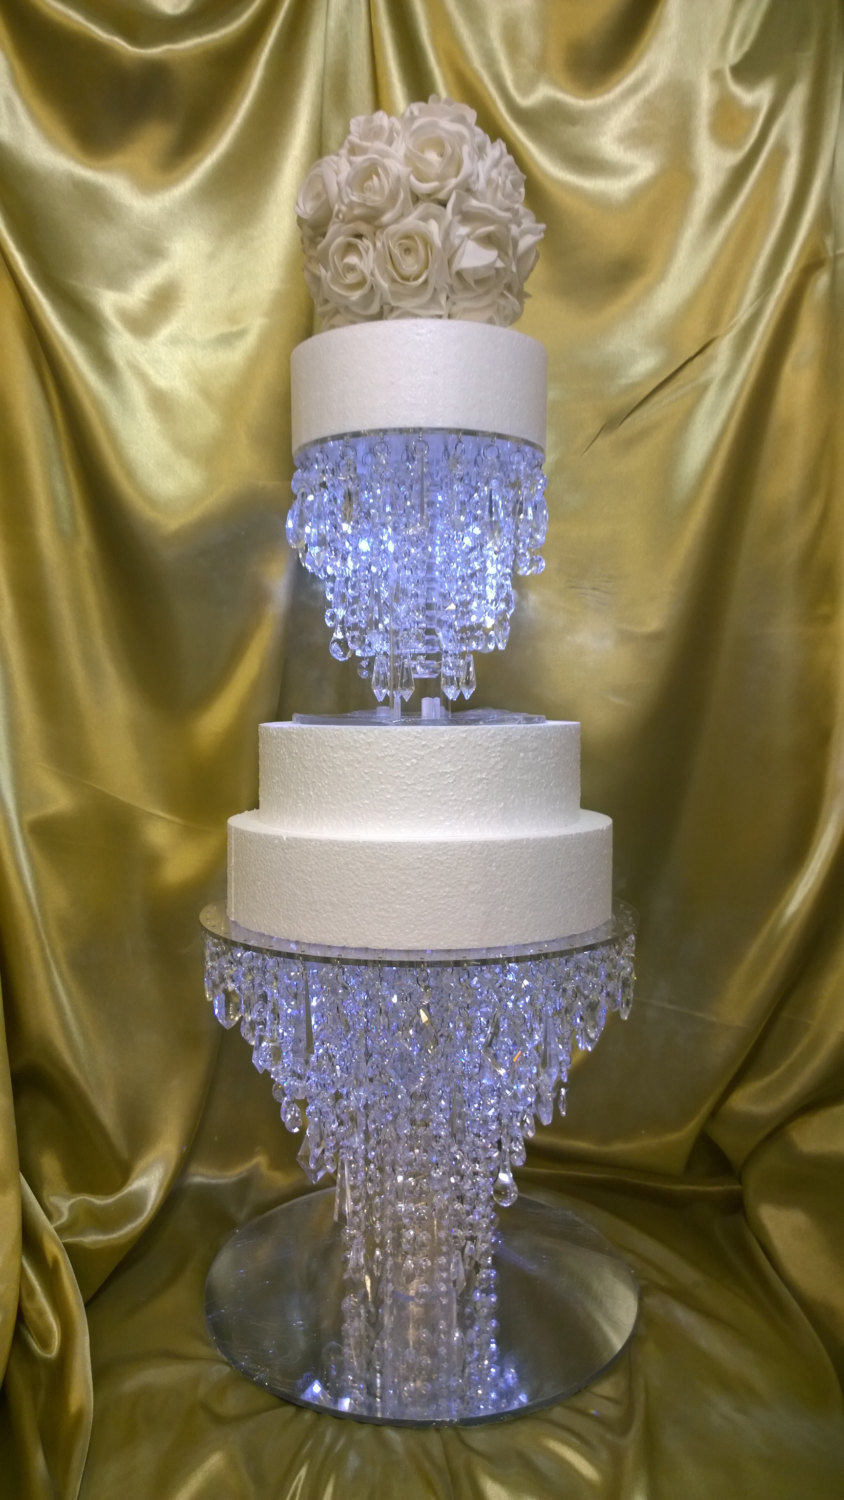 Crystal Cake Stands For Wedding Cakes  The Ice crystal cake stand 2 tier set Glass